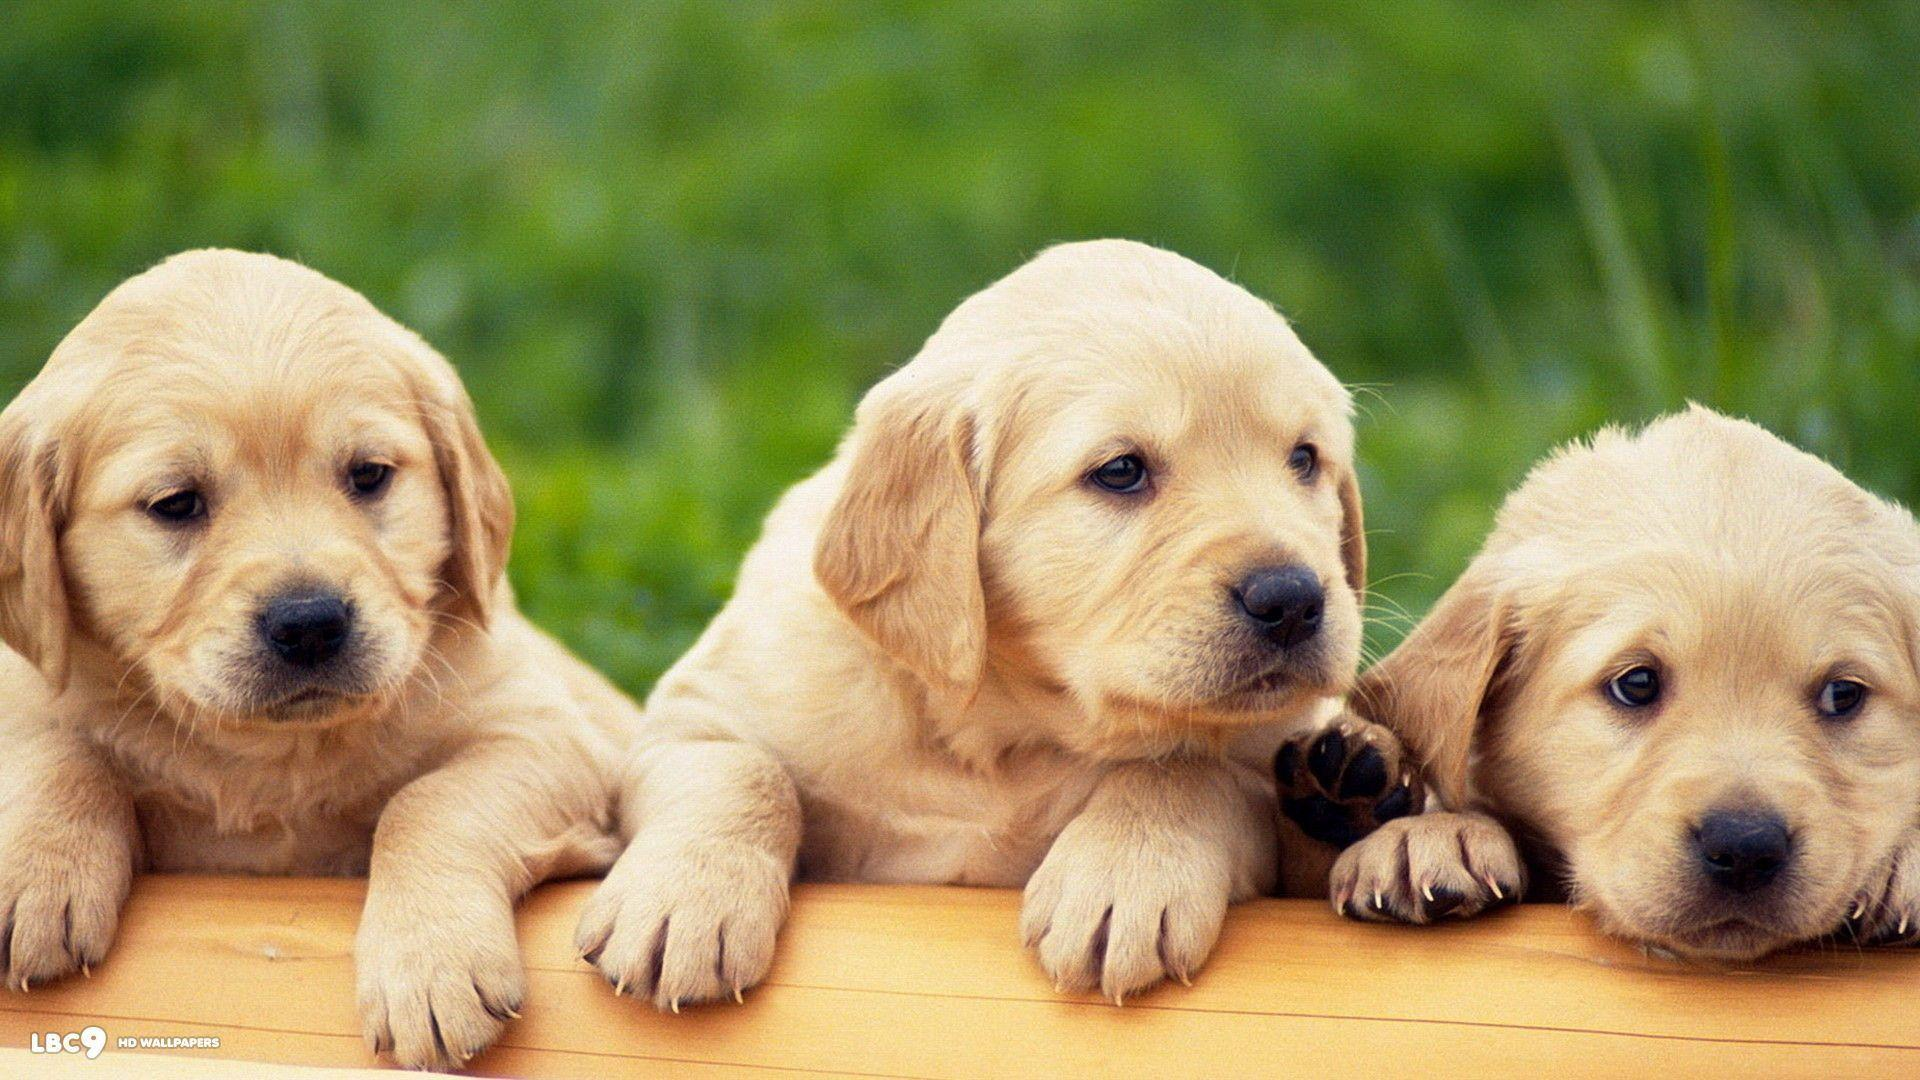 Labrador Wallpapers - HD Wallpapers Inn